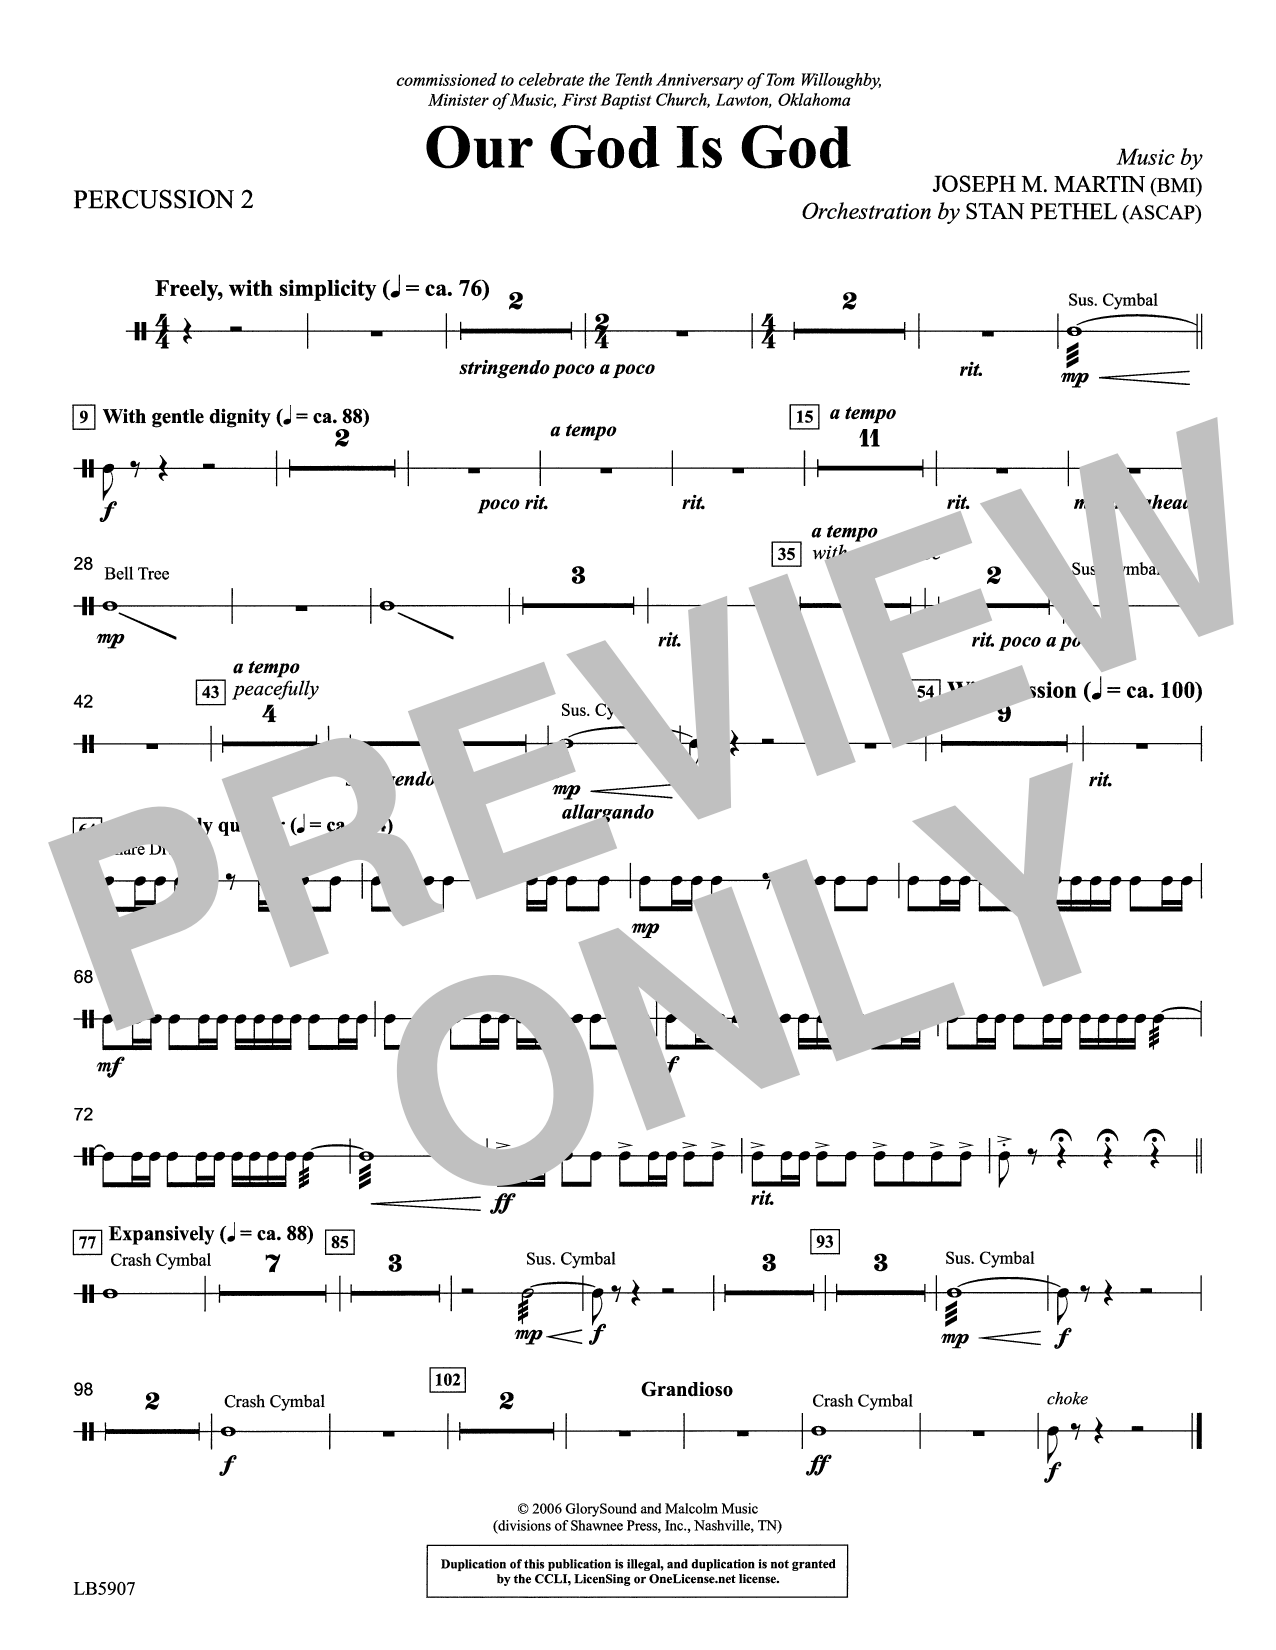 Our God Is God - Percussion 2 Sheet Music